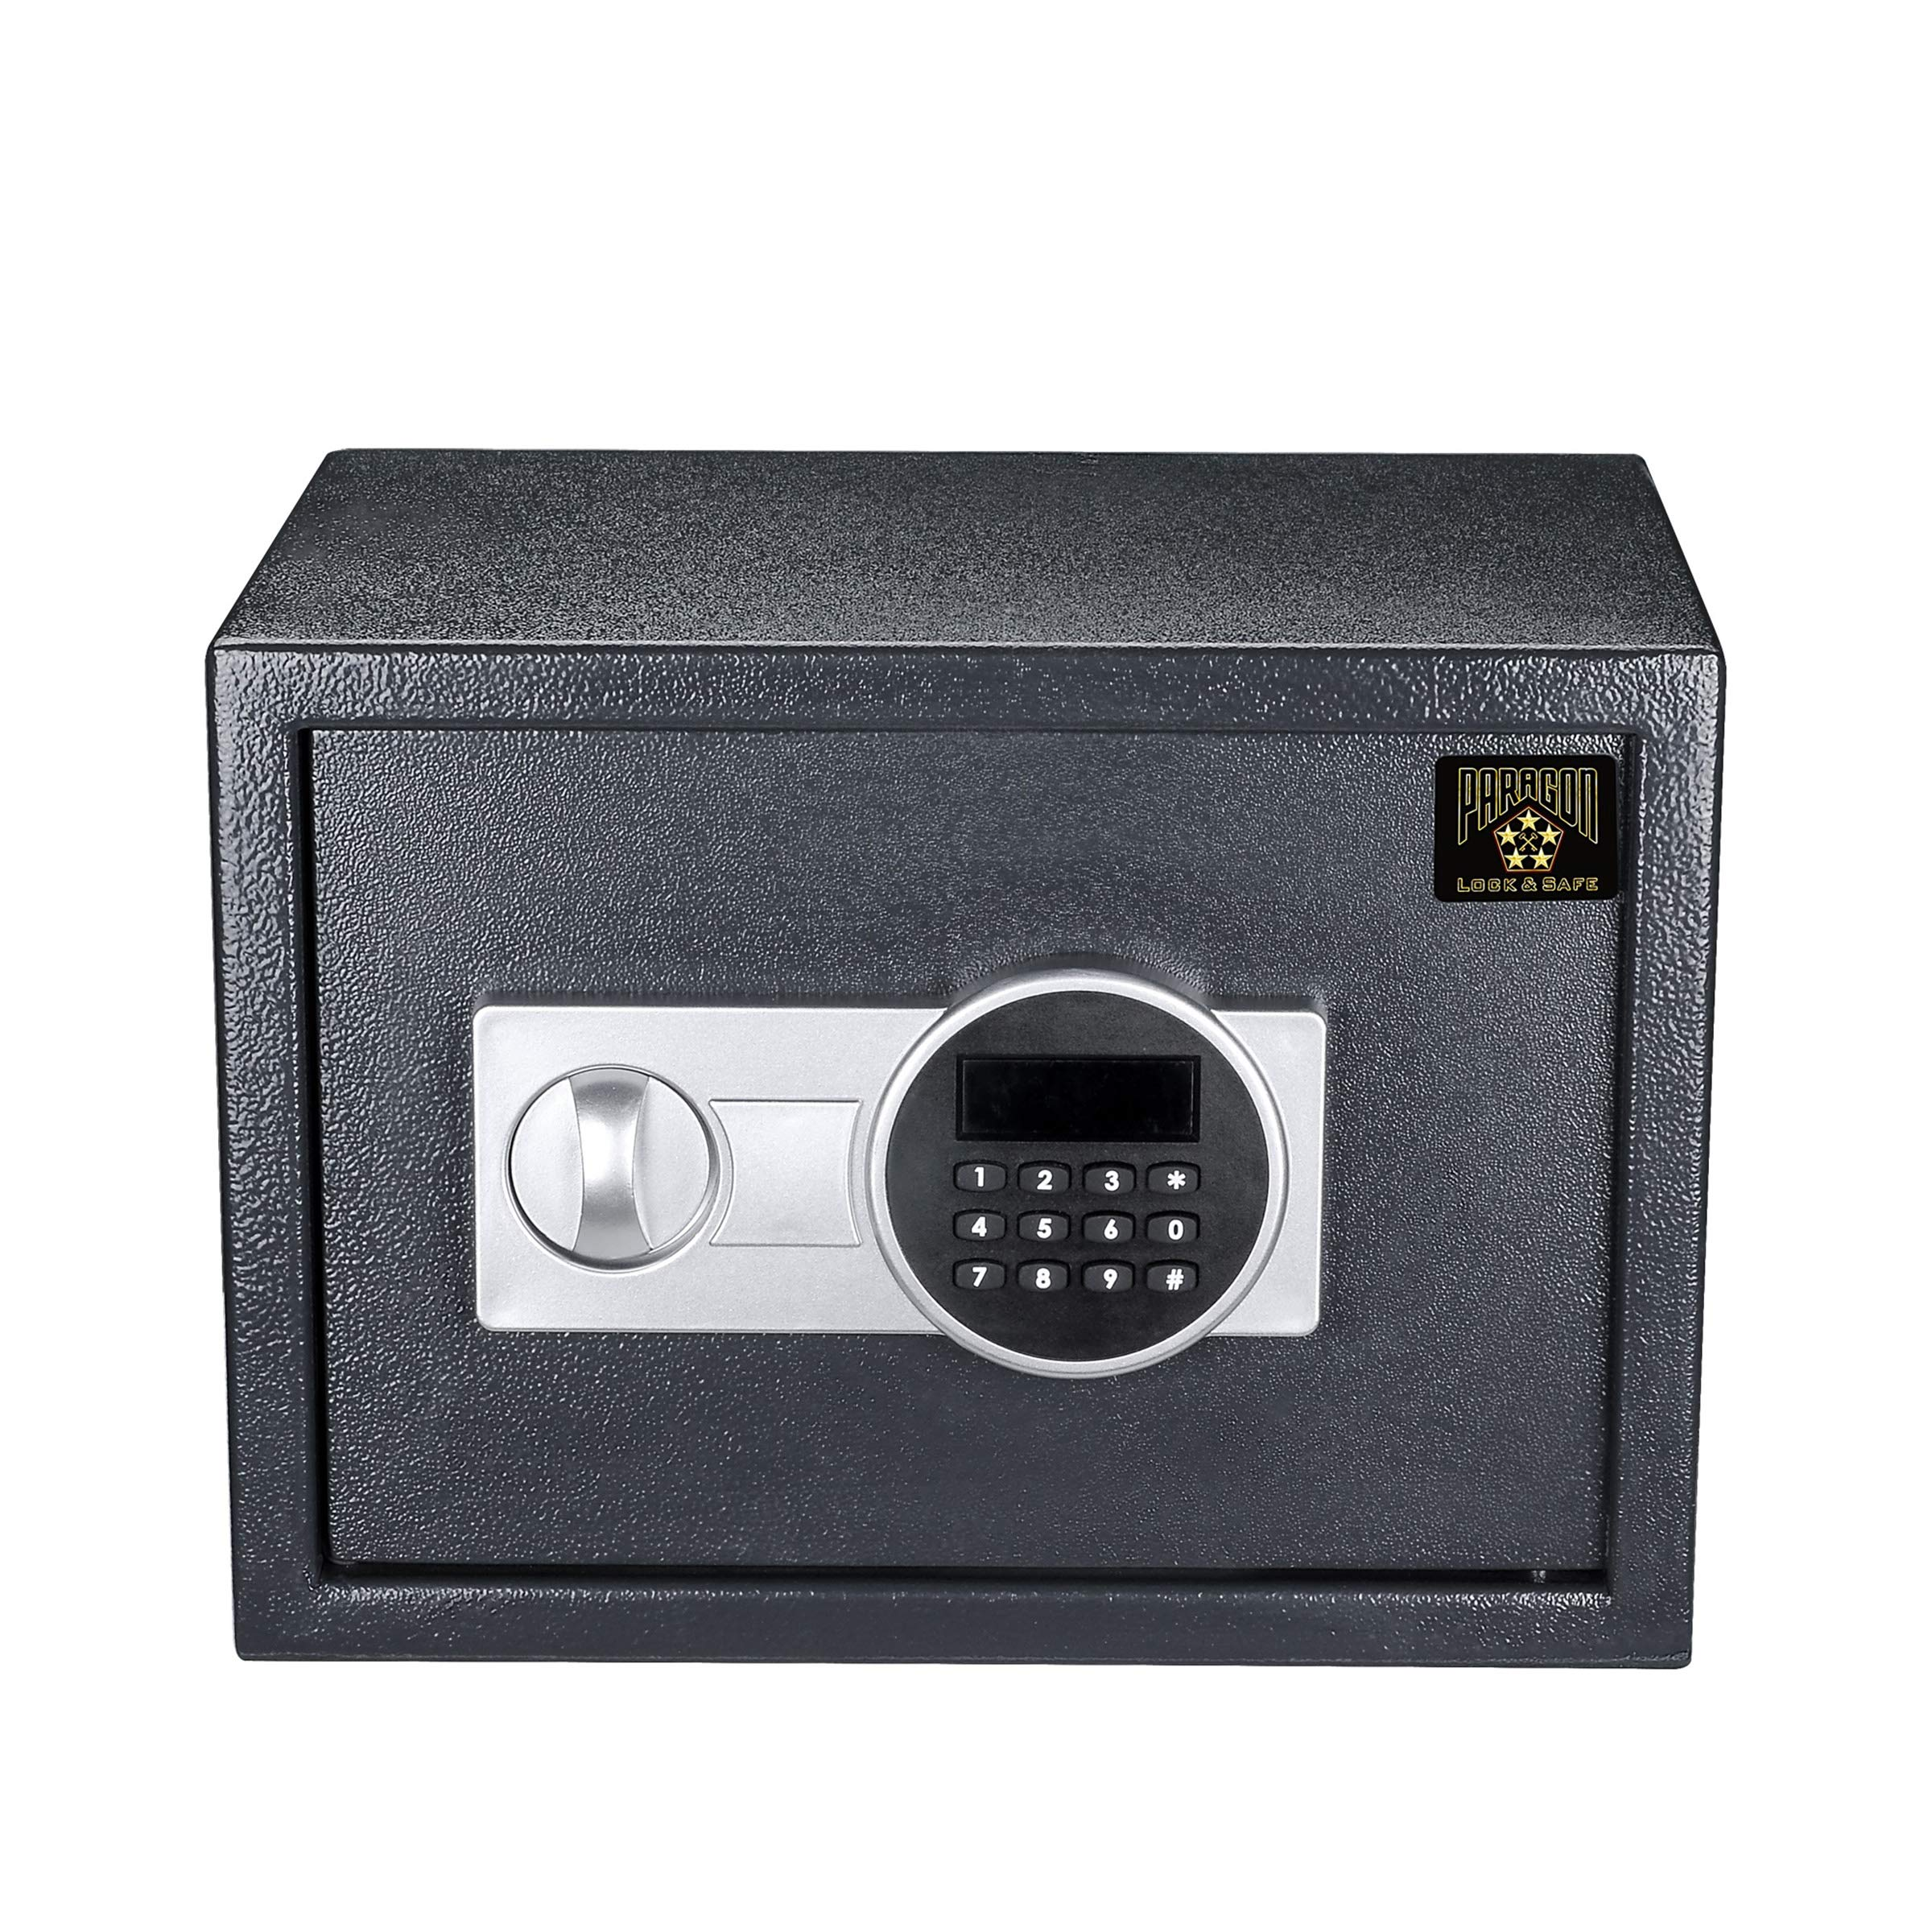 Paragon Digital Safe-Electronic Steel Safe with Keypad, 2 Manual Override Keys-Protect Money, Jewelry, Passports-For Home, Business or Travel by Paragon